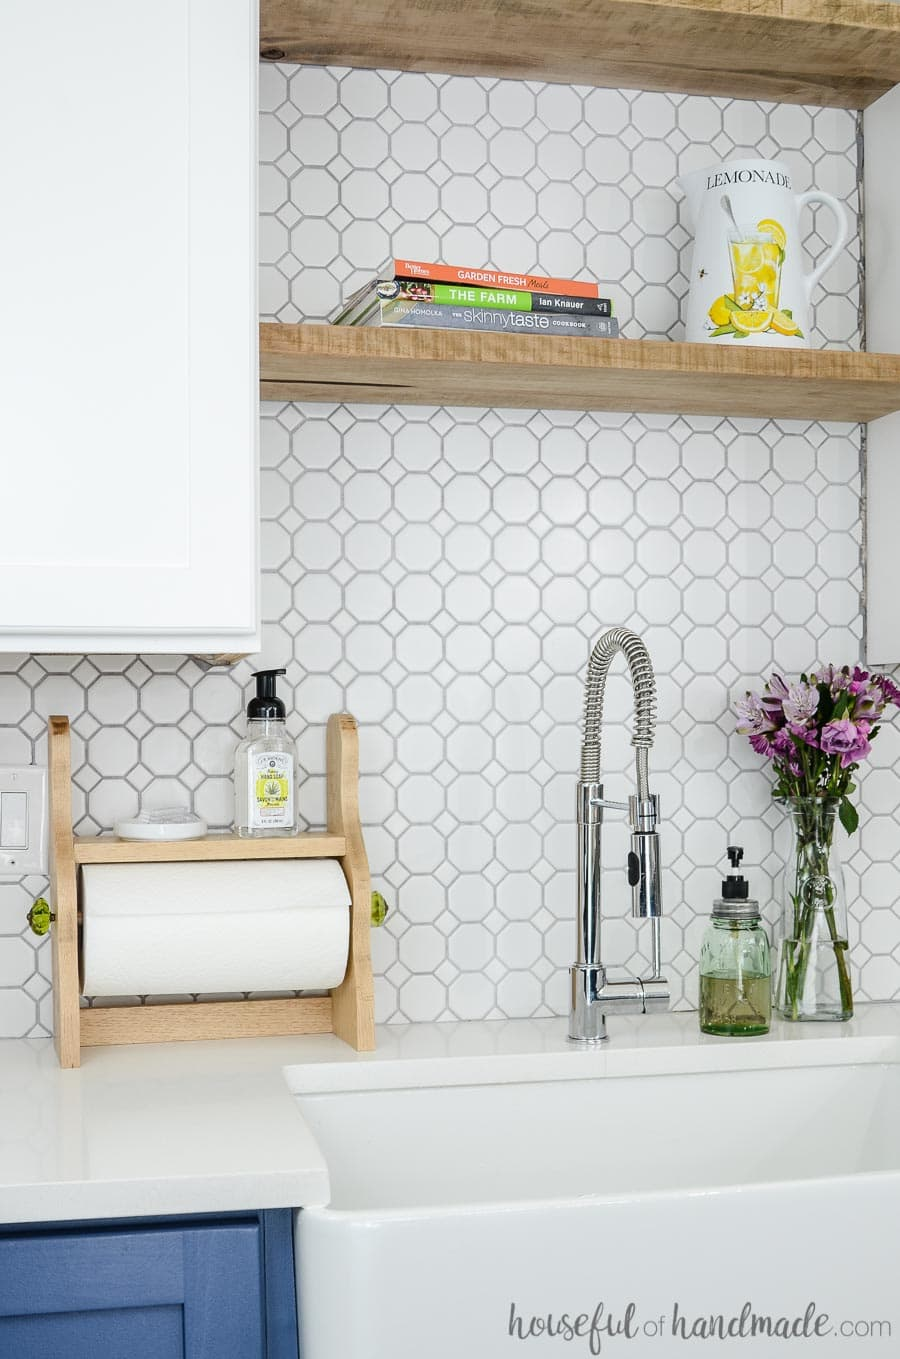 Build a beautiful farmhouse paper towel holder in just 15 minutes with this easy DIY tutorial. This rustic paper towel holder is the perfect under cabinet paper towel dispenser with a shelf to store other items you need to keep at hand. Housefulofhandmade.com